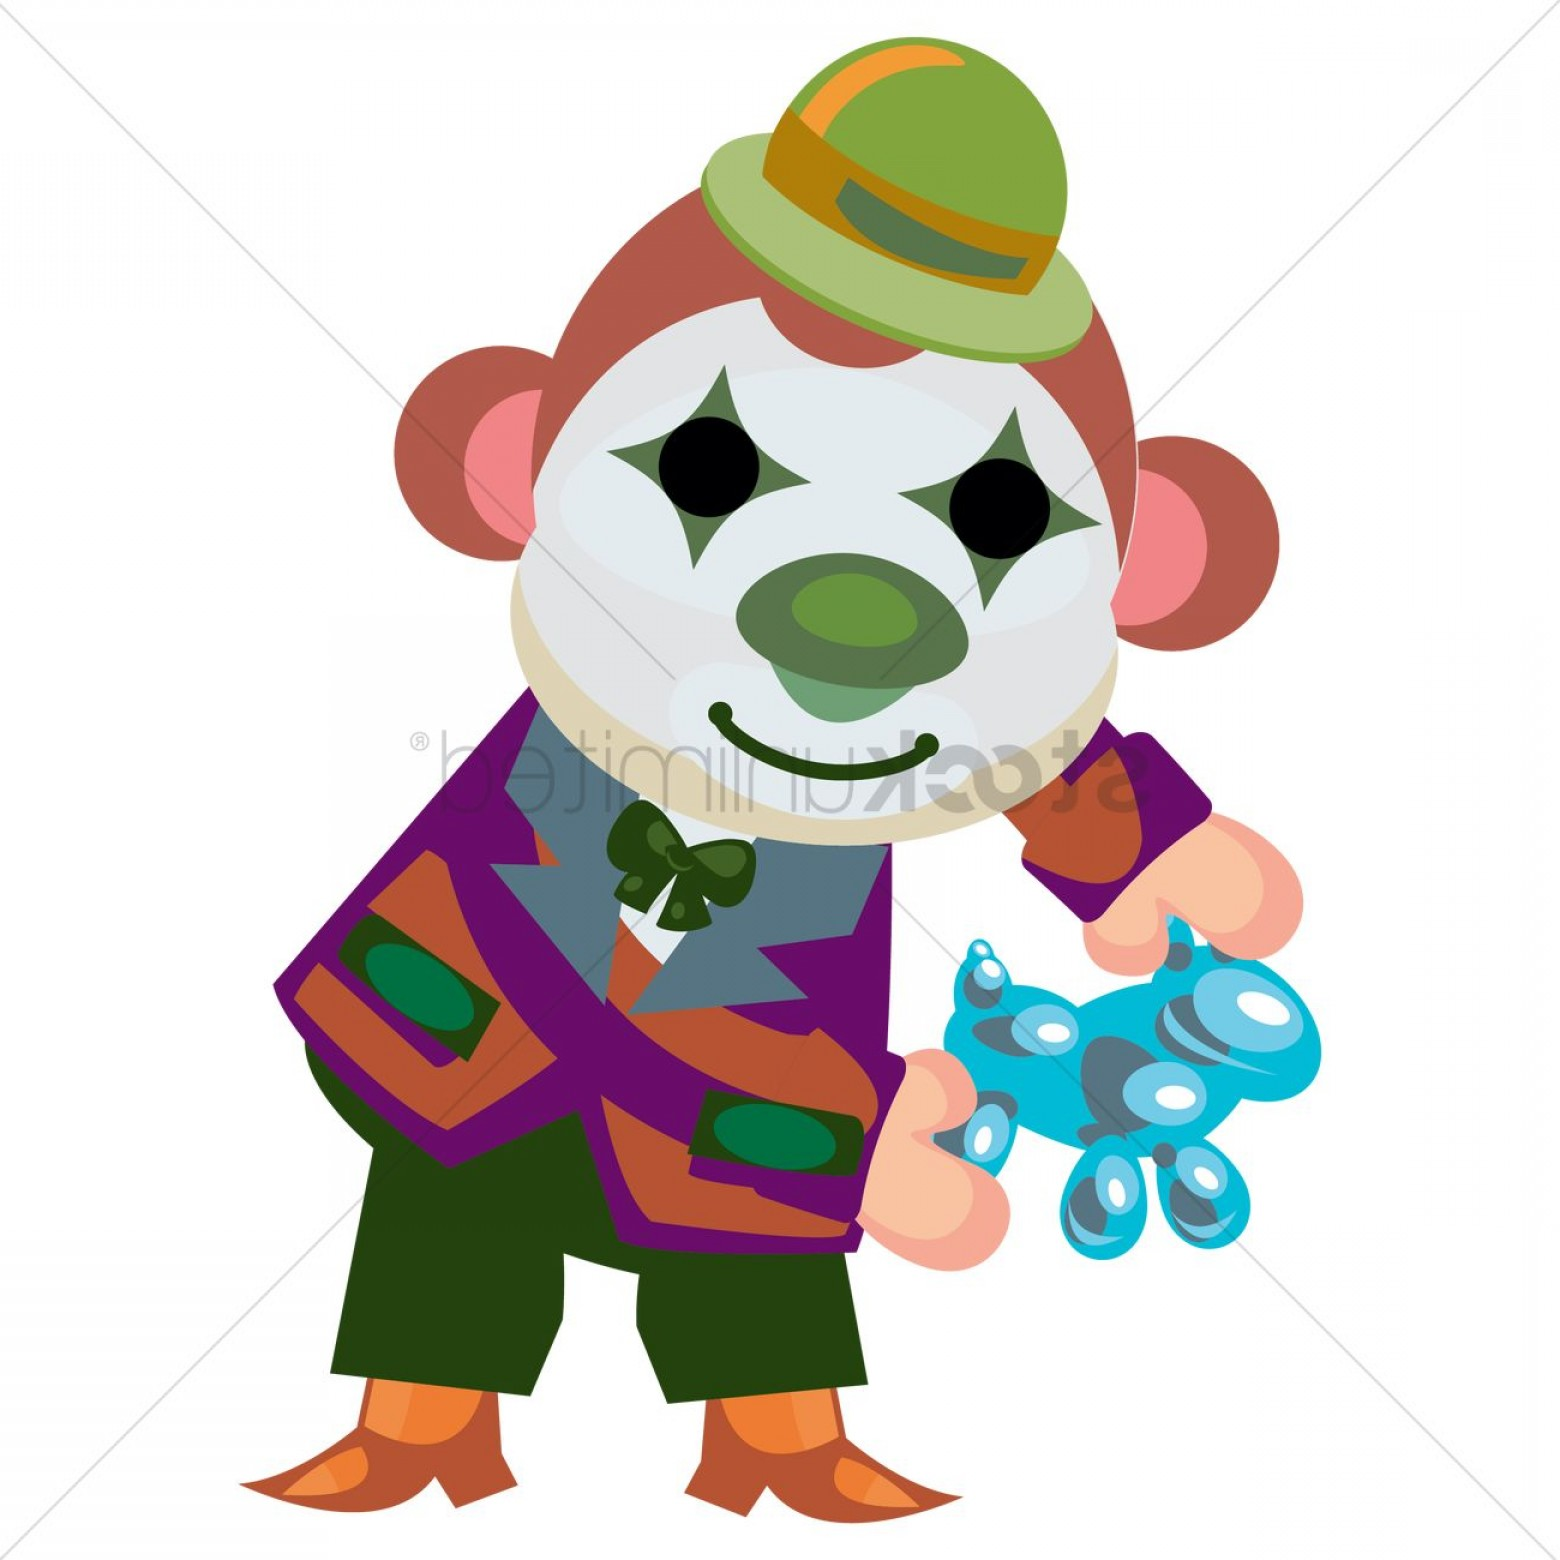 Circus Animals Vector Graphic: Circus Monkey With Clown Face Paint Making Balloon Animals